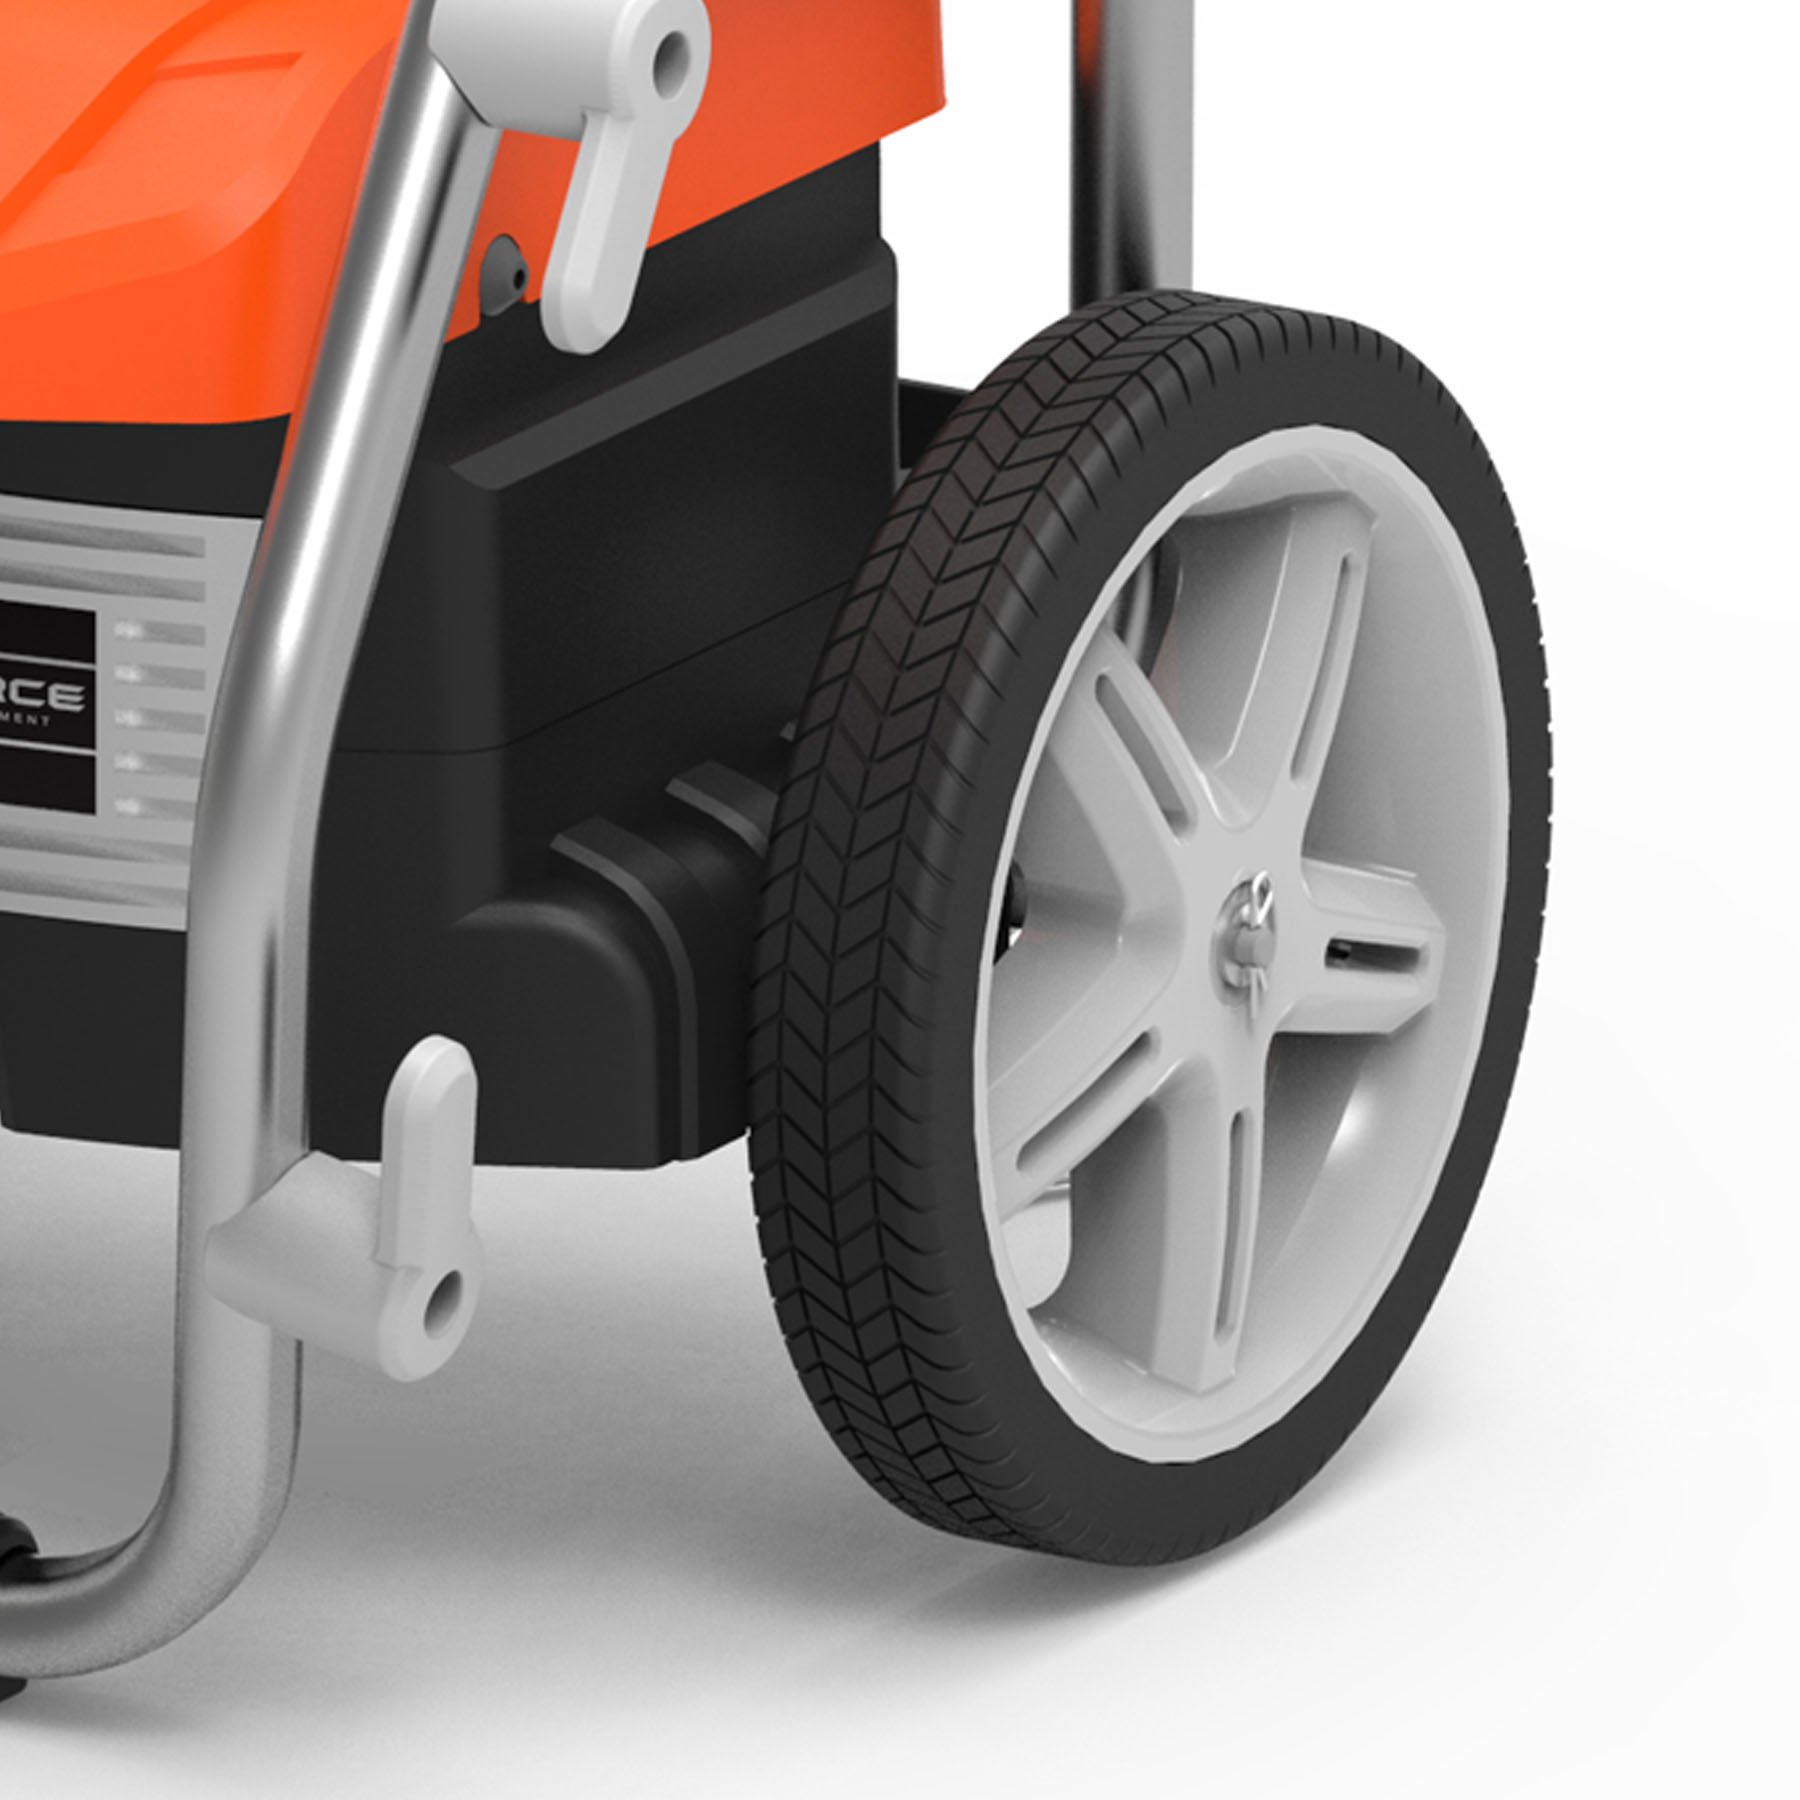 Yard Force YF2200BL Electric Brushless Pressure Washer 2200 PSI by YardForce (Image #6)